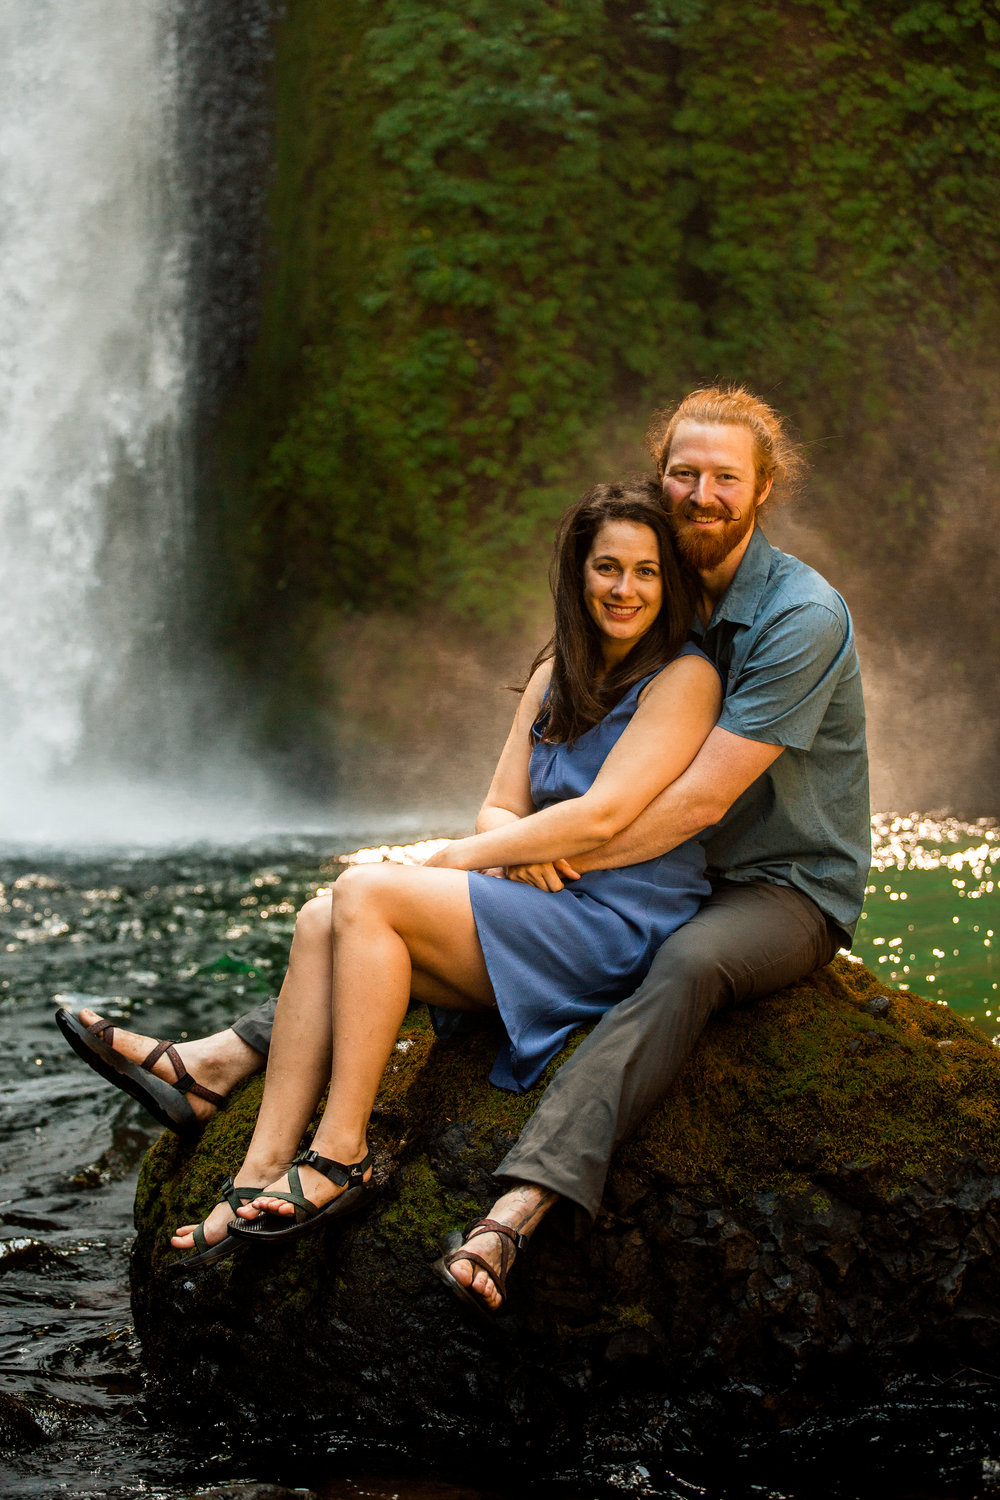 nicole-daacke-photography-wahclella-falls-waterfall-engagement-session-portland-engagement-photographer-columbia-river-gorge-oregon-elopement-photographer-29.jpg